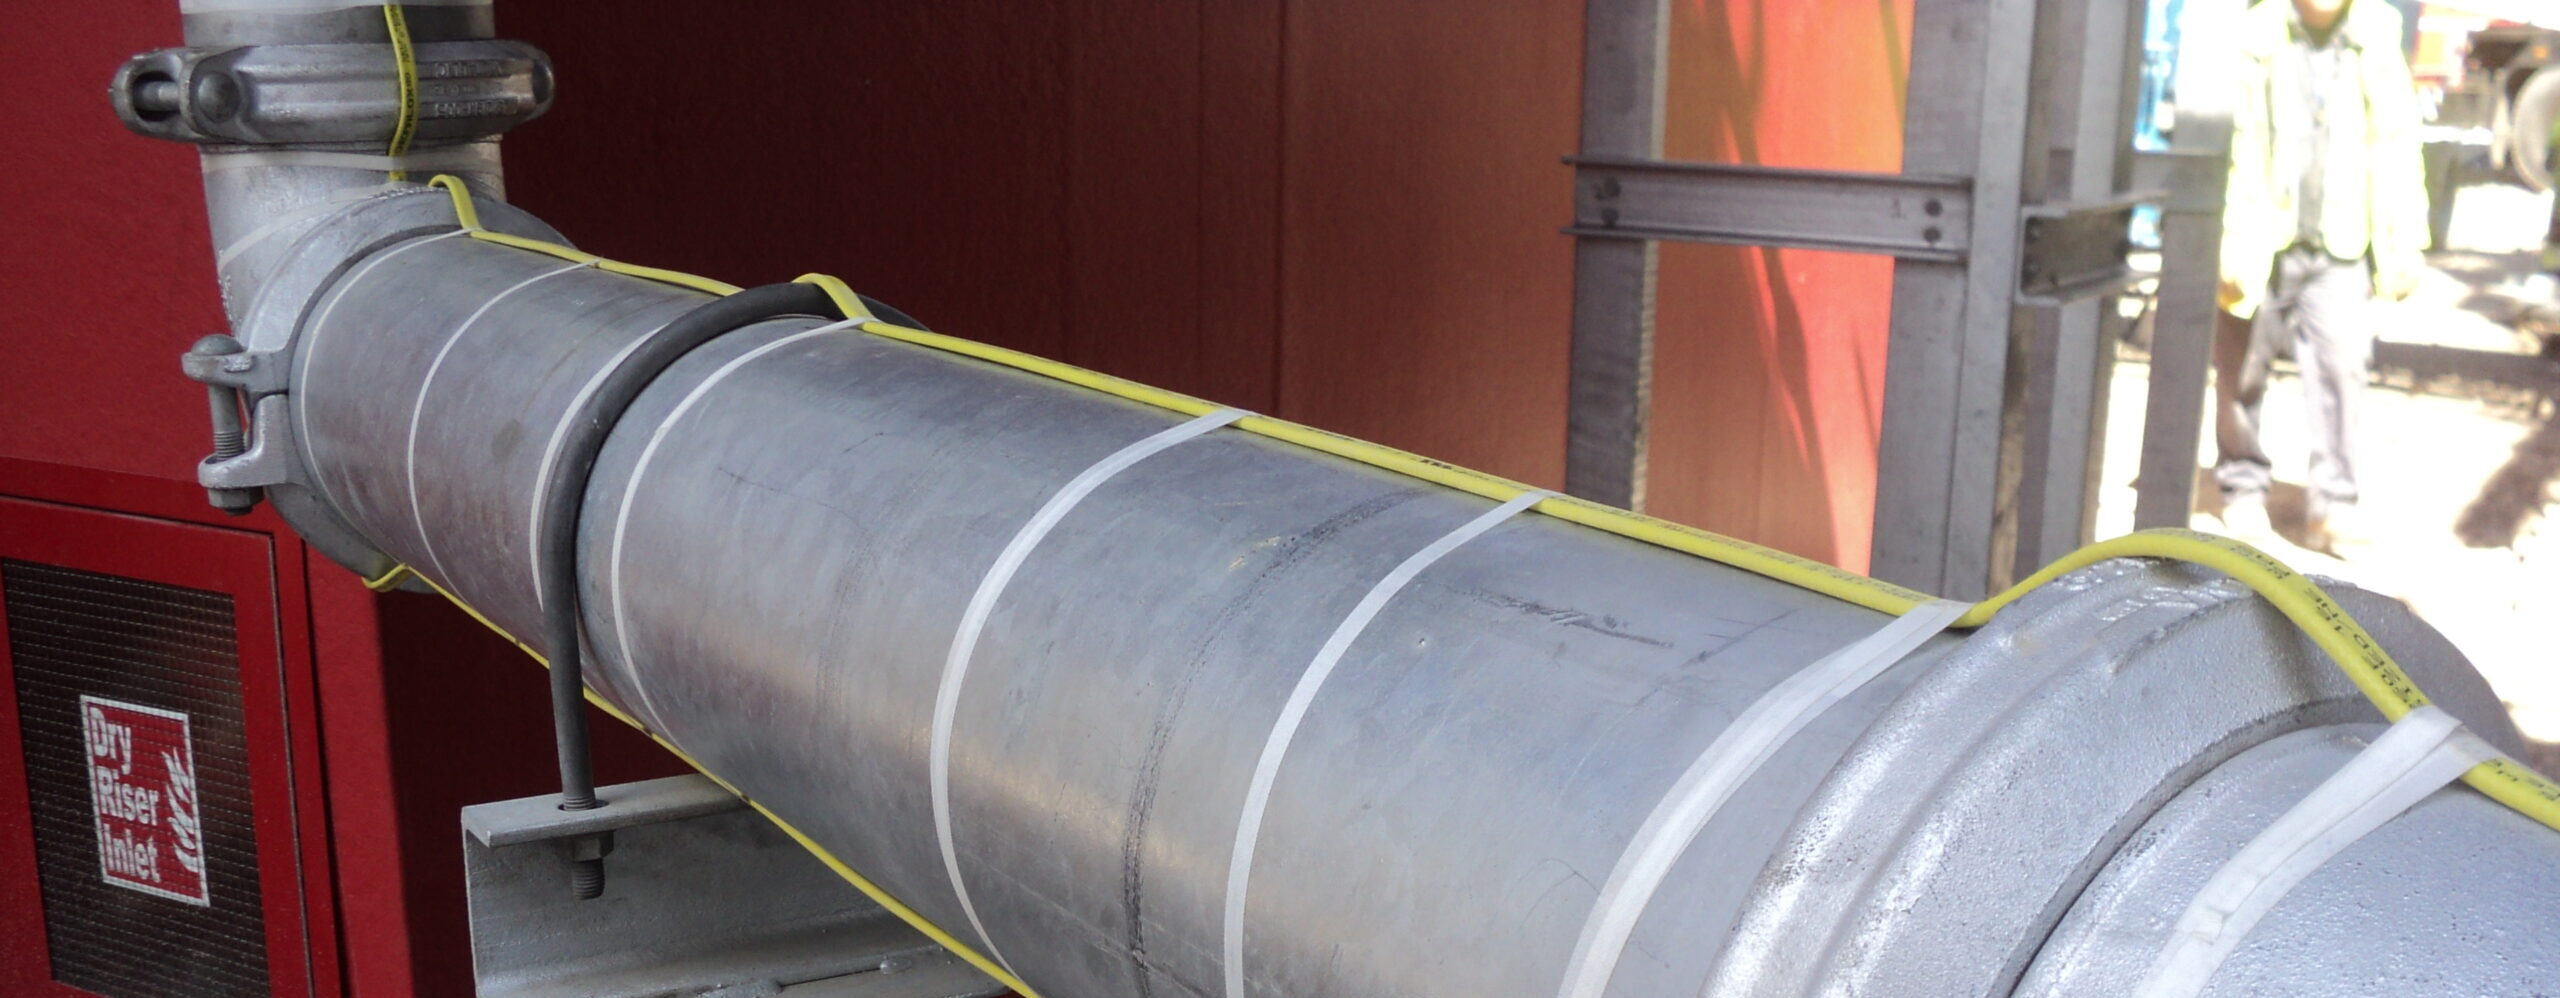 Trace heating, frost protection